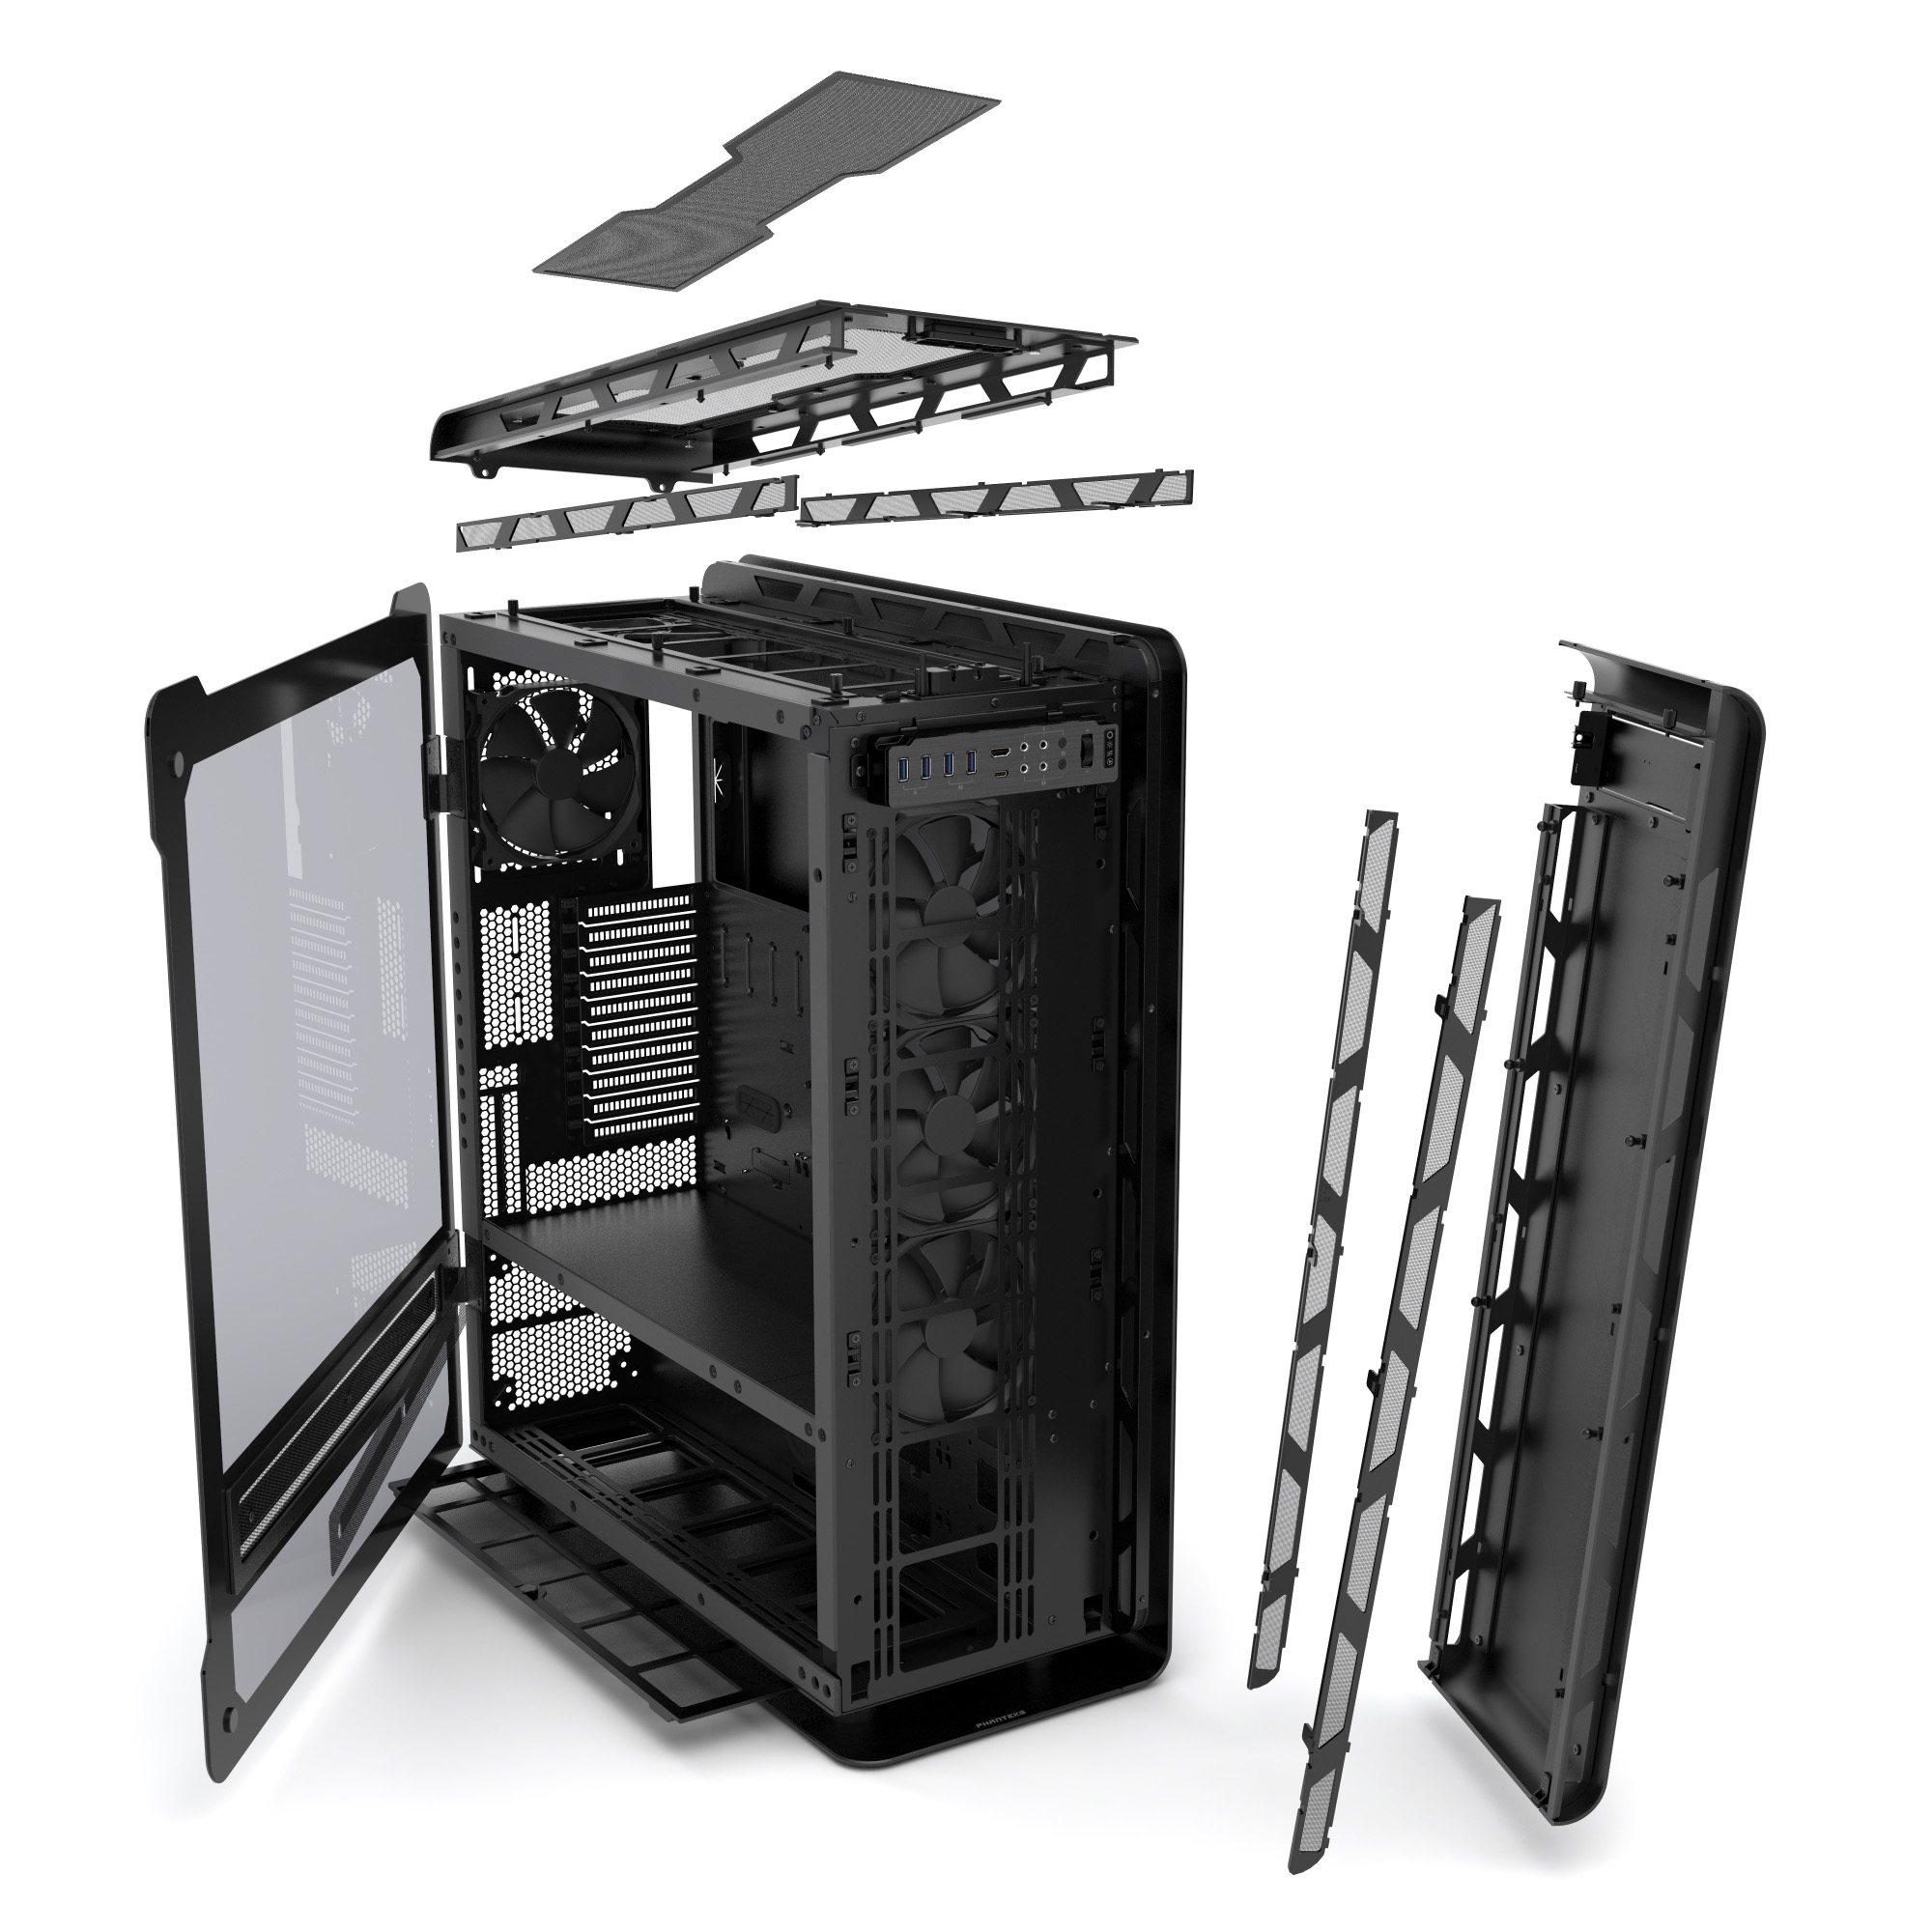 Phanteks Innovative Computer Hardware Design